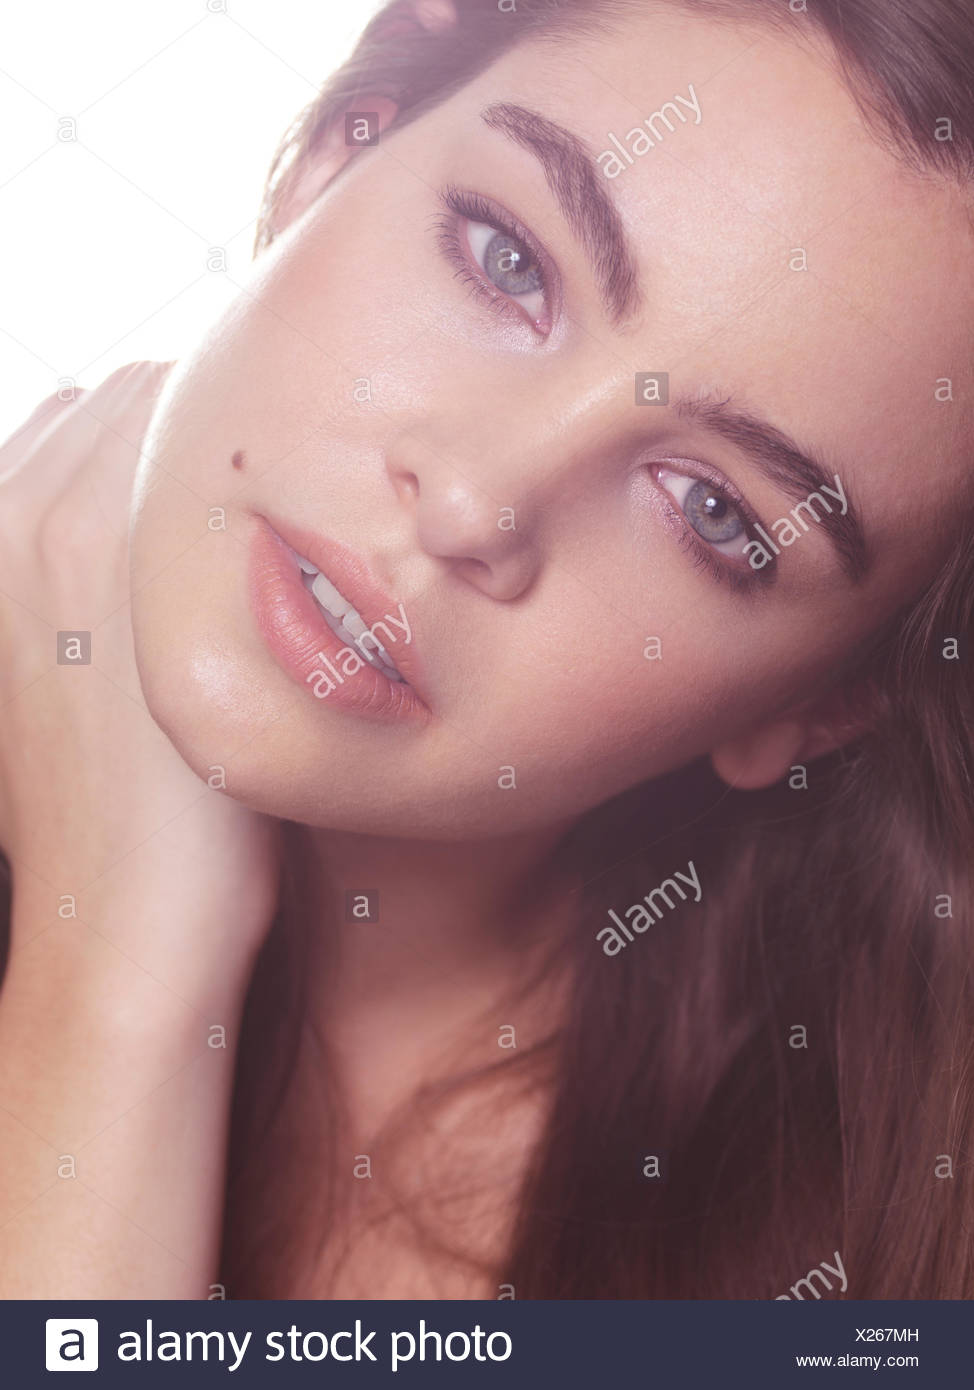 Woman With Long Hair And Bushy Eyebrows In Soft Light Stock Photo